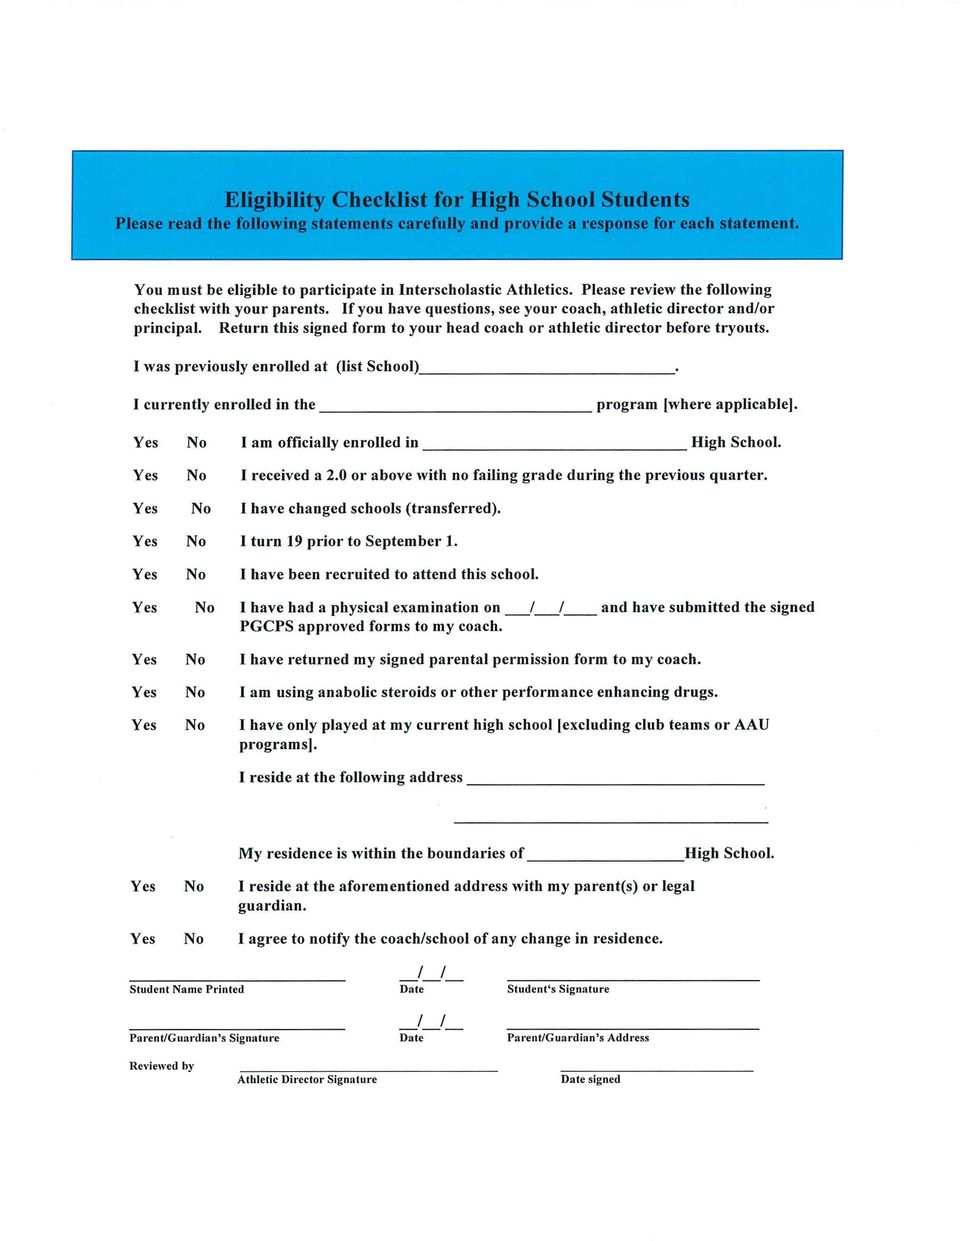 Return this signed form to your head coach or athletic director before tryouts. I was previously enrolled at (list School) I currently enrolled in the program [where applicable].